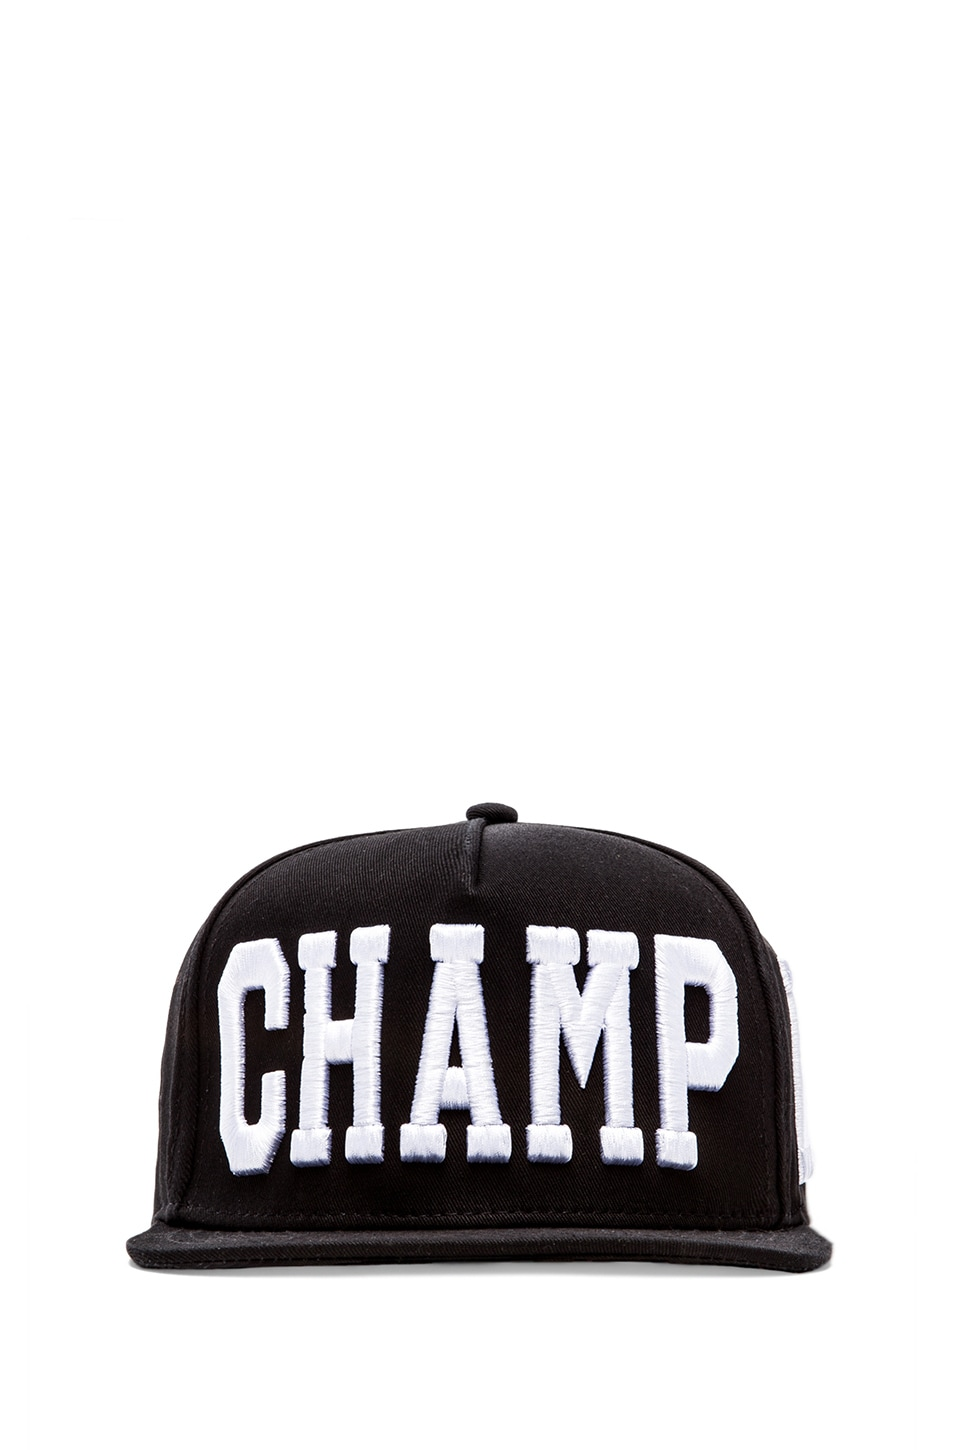 Stampd Champagne Hat in Black